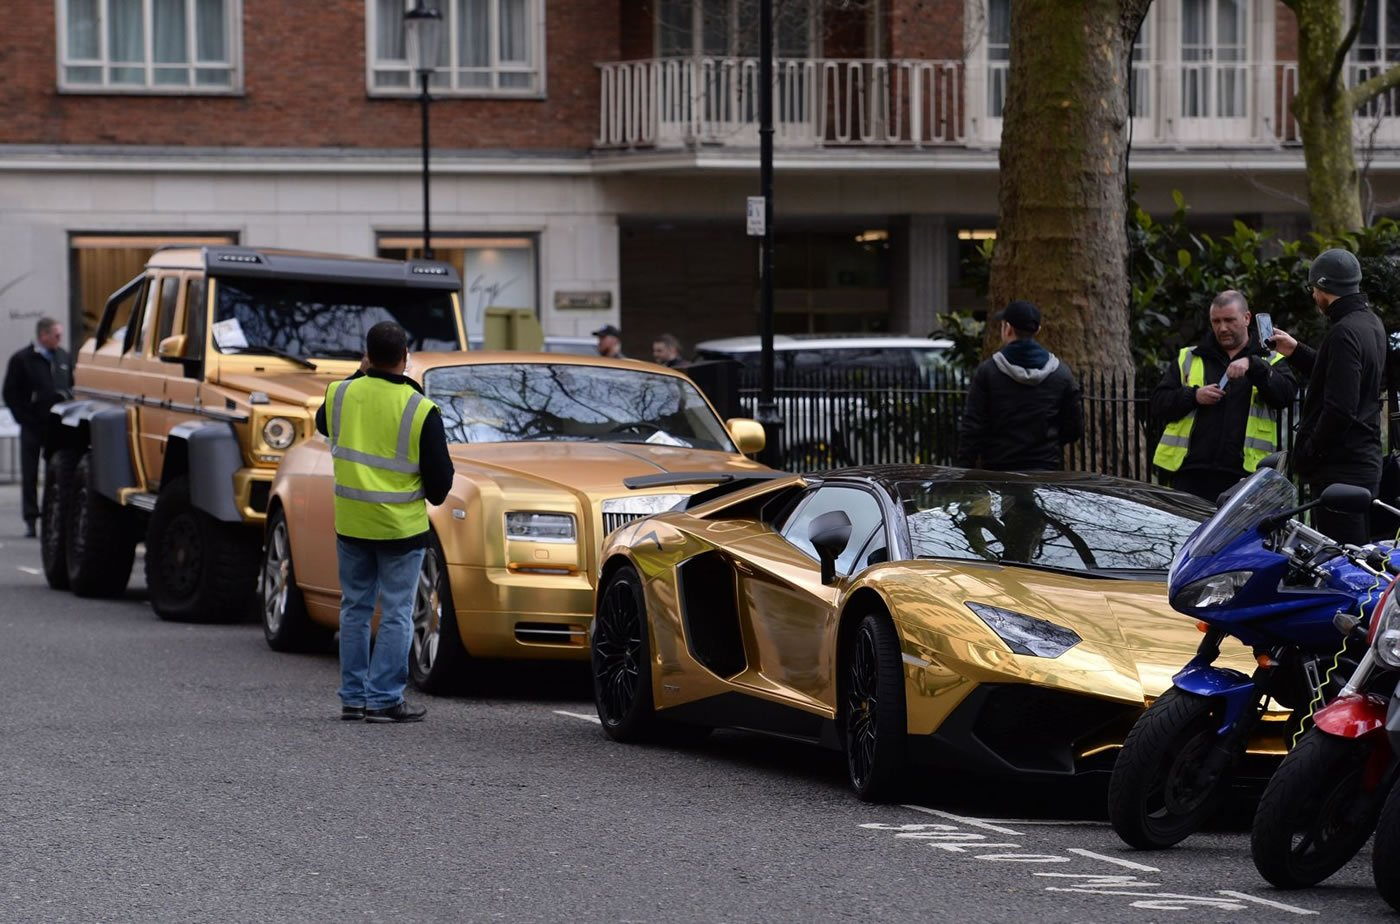 Wealthy Arabs just love showing off their shiny supercars in London